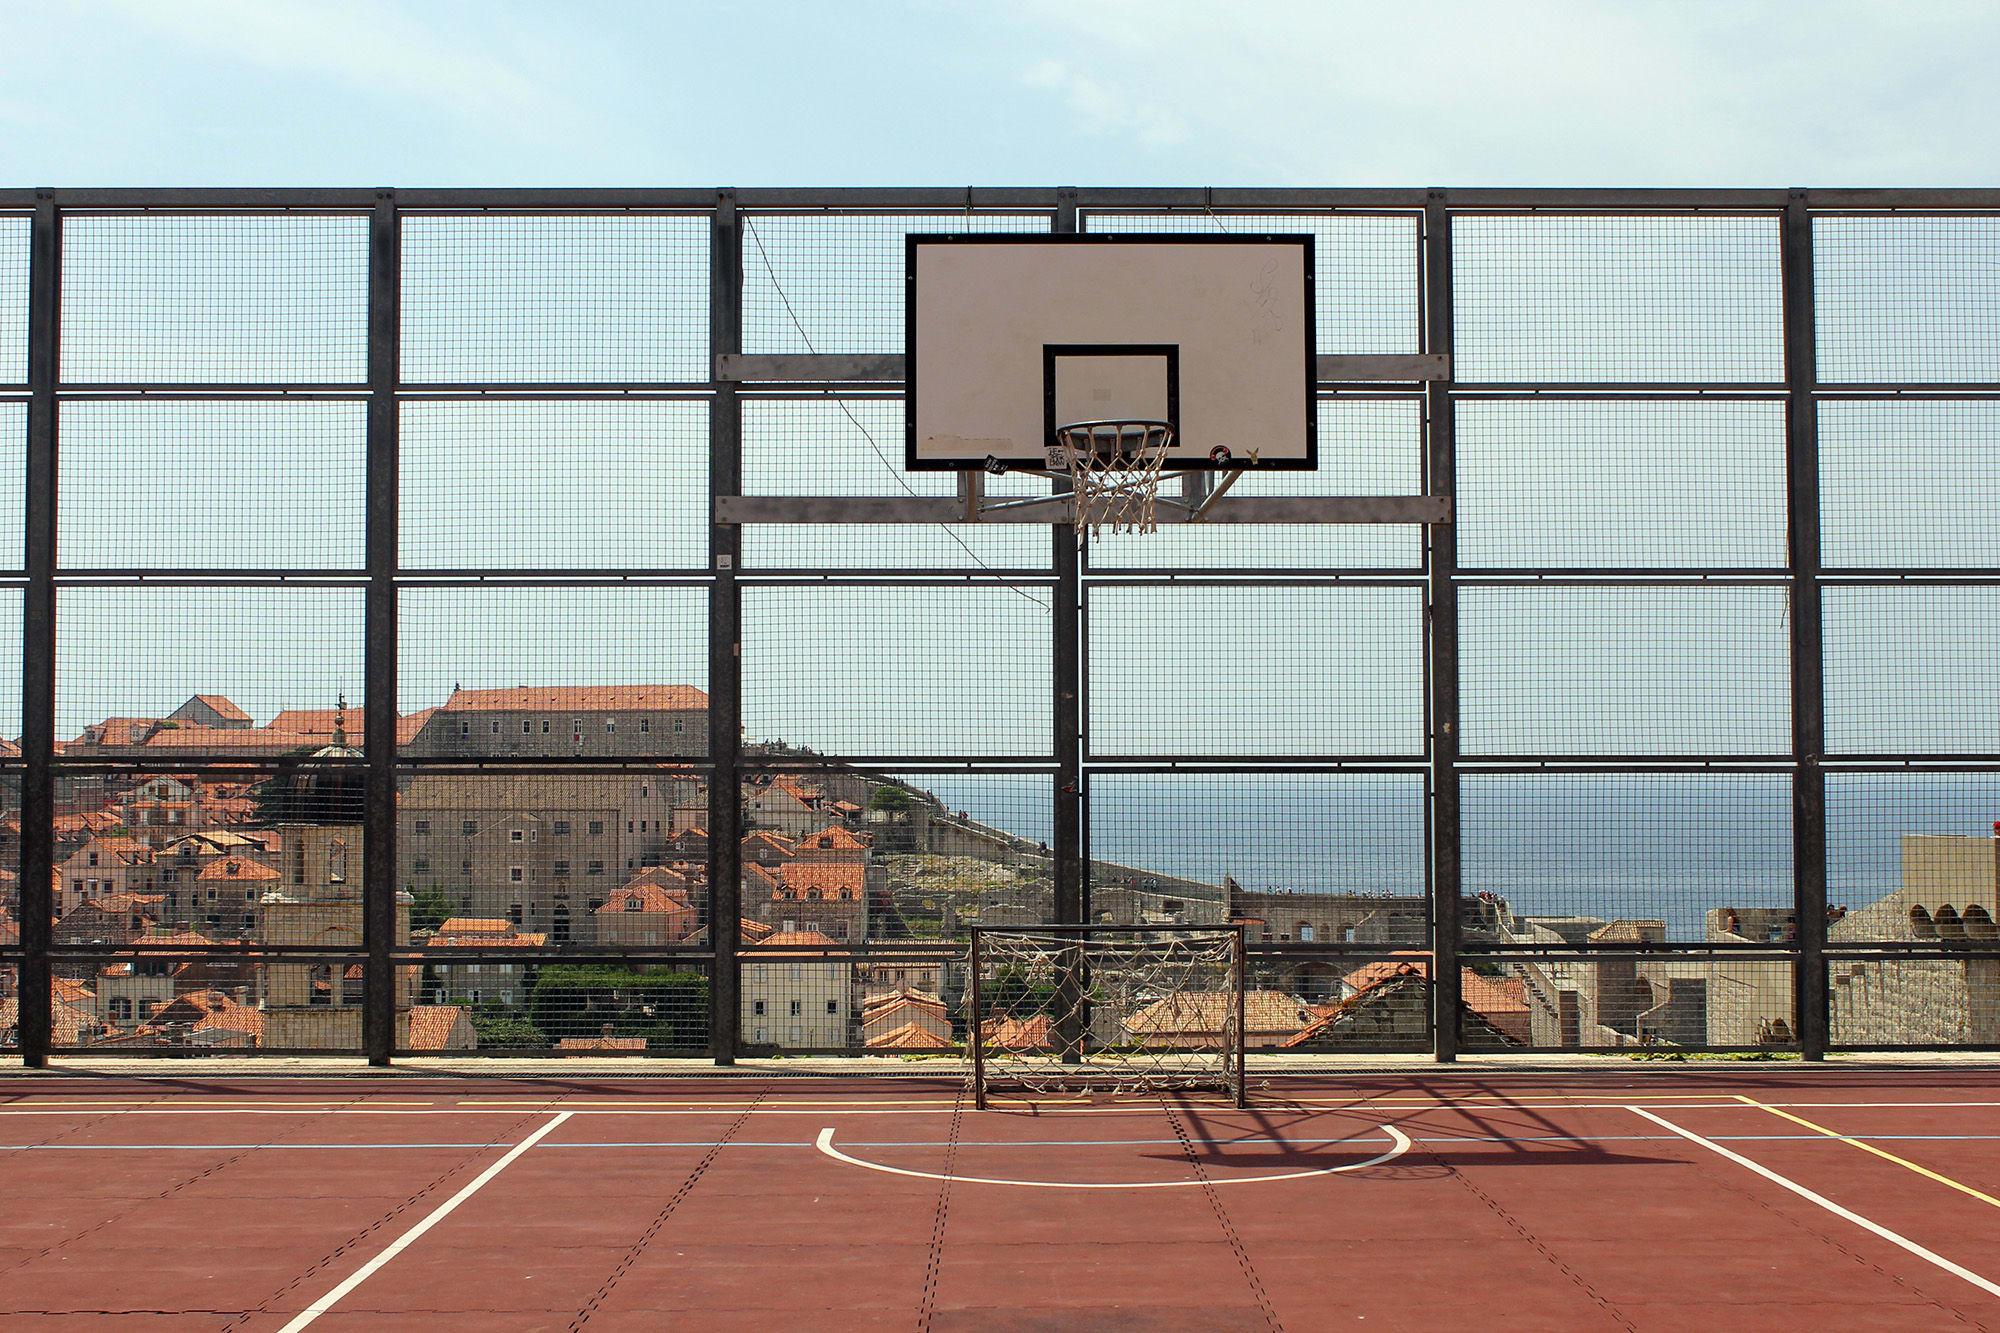 Basketball field in the old town of Dubrovnik